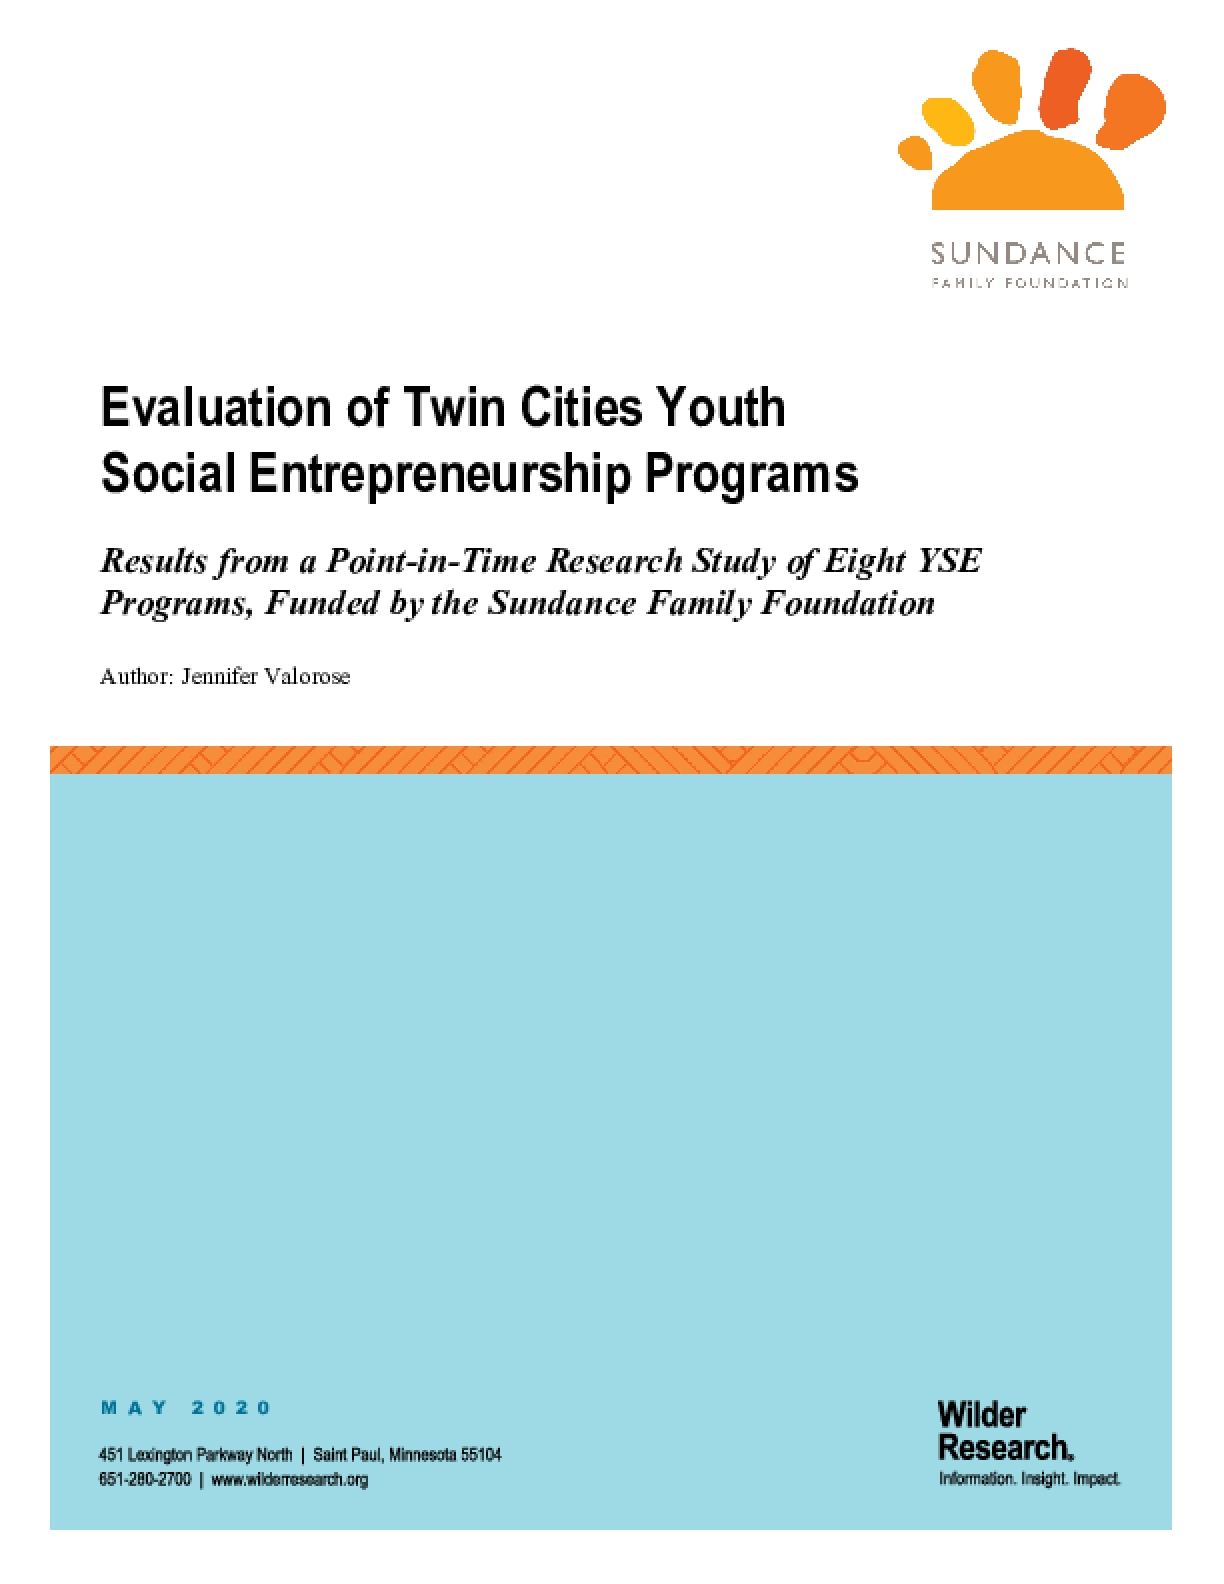 Evaluation of Twin Cities Youth Social Entrepreneurship Programs: Results from a Point-in-Time Research Study of Eight YSE Programs